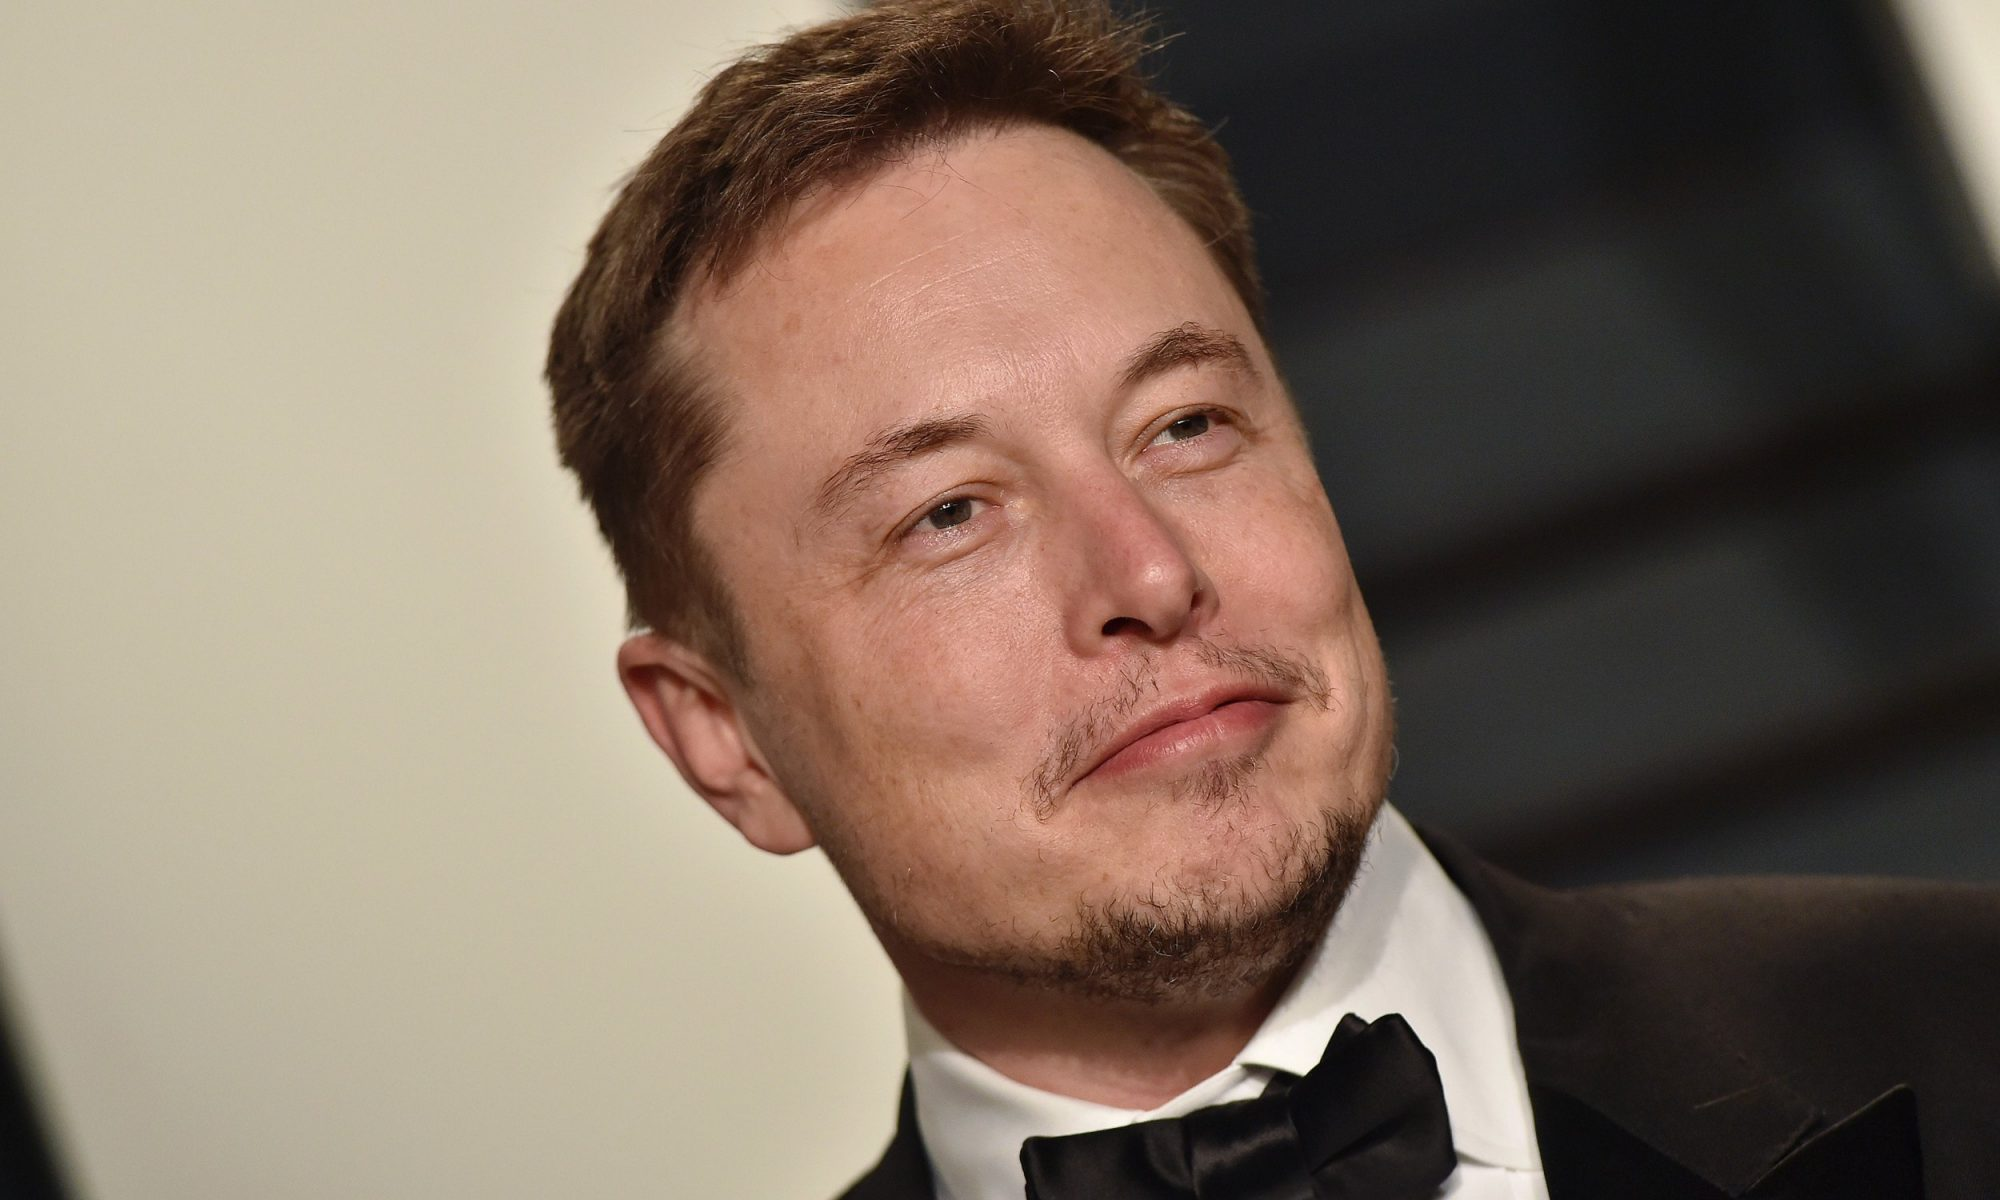 EC: Elon Musk Recalls His Awe-Inspiring Caffeine Addiction